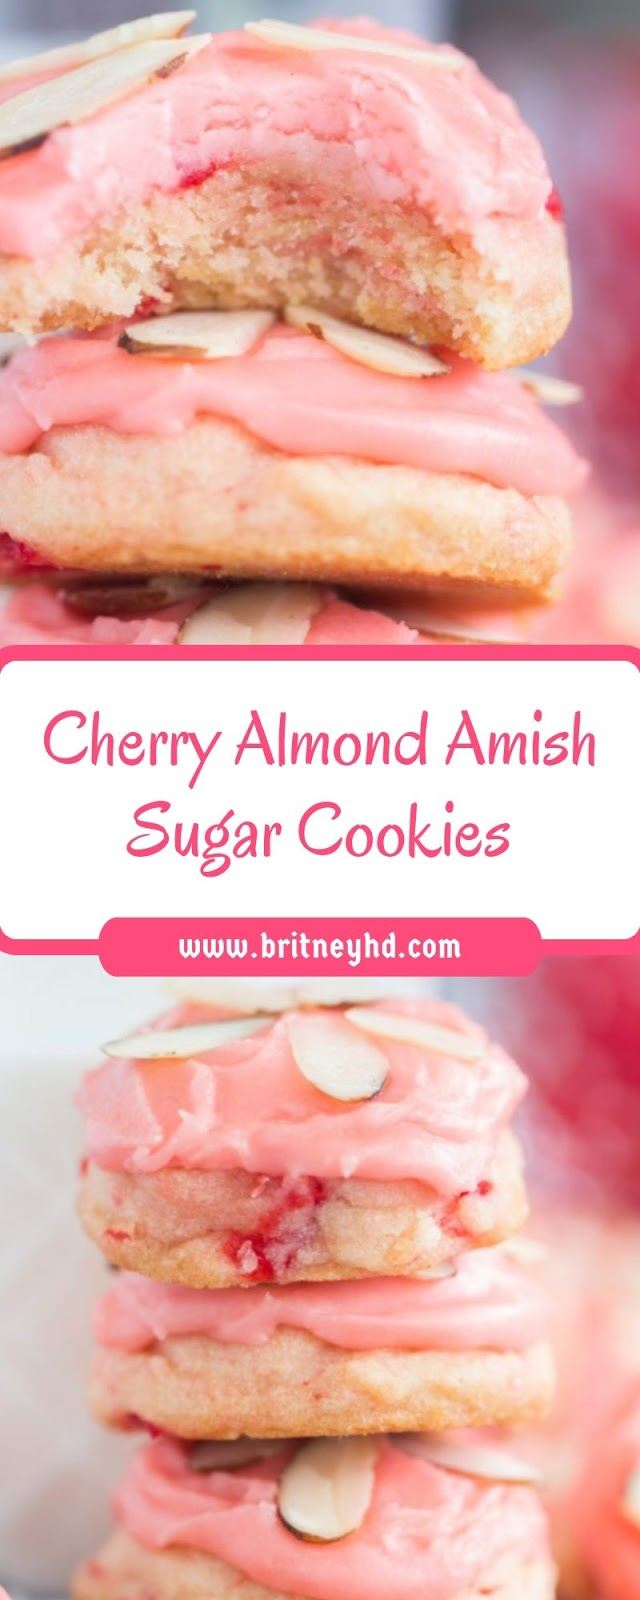 CHERRY ALMOND AMISH SUGAR COOKIES